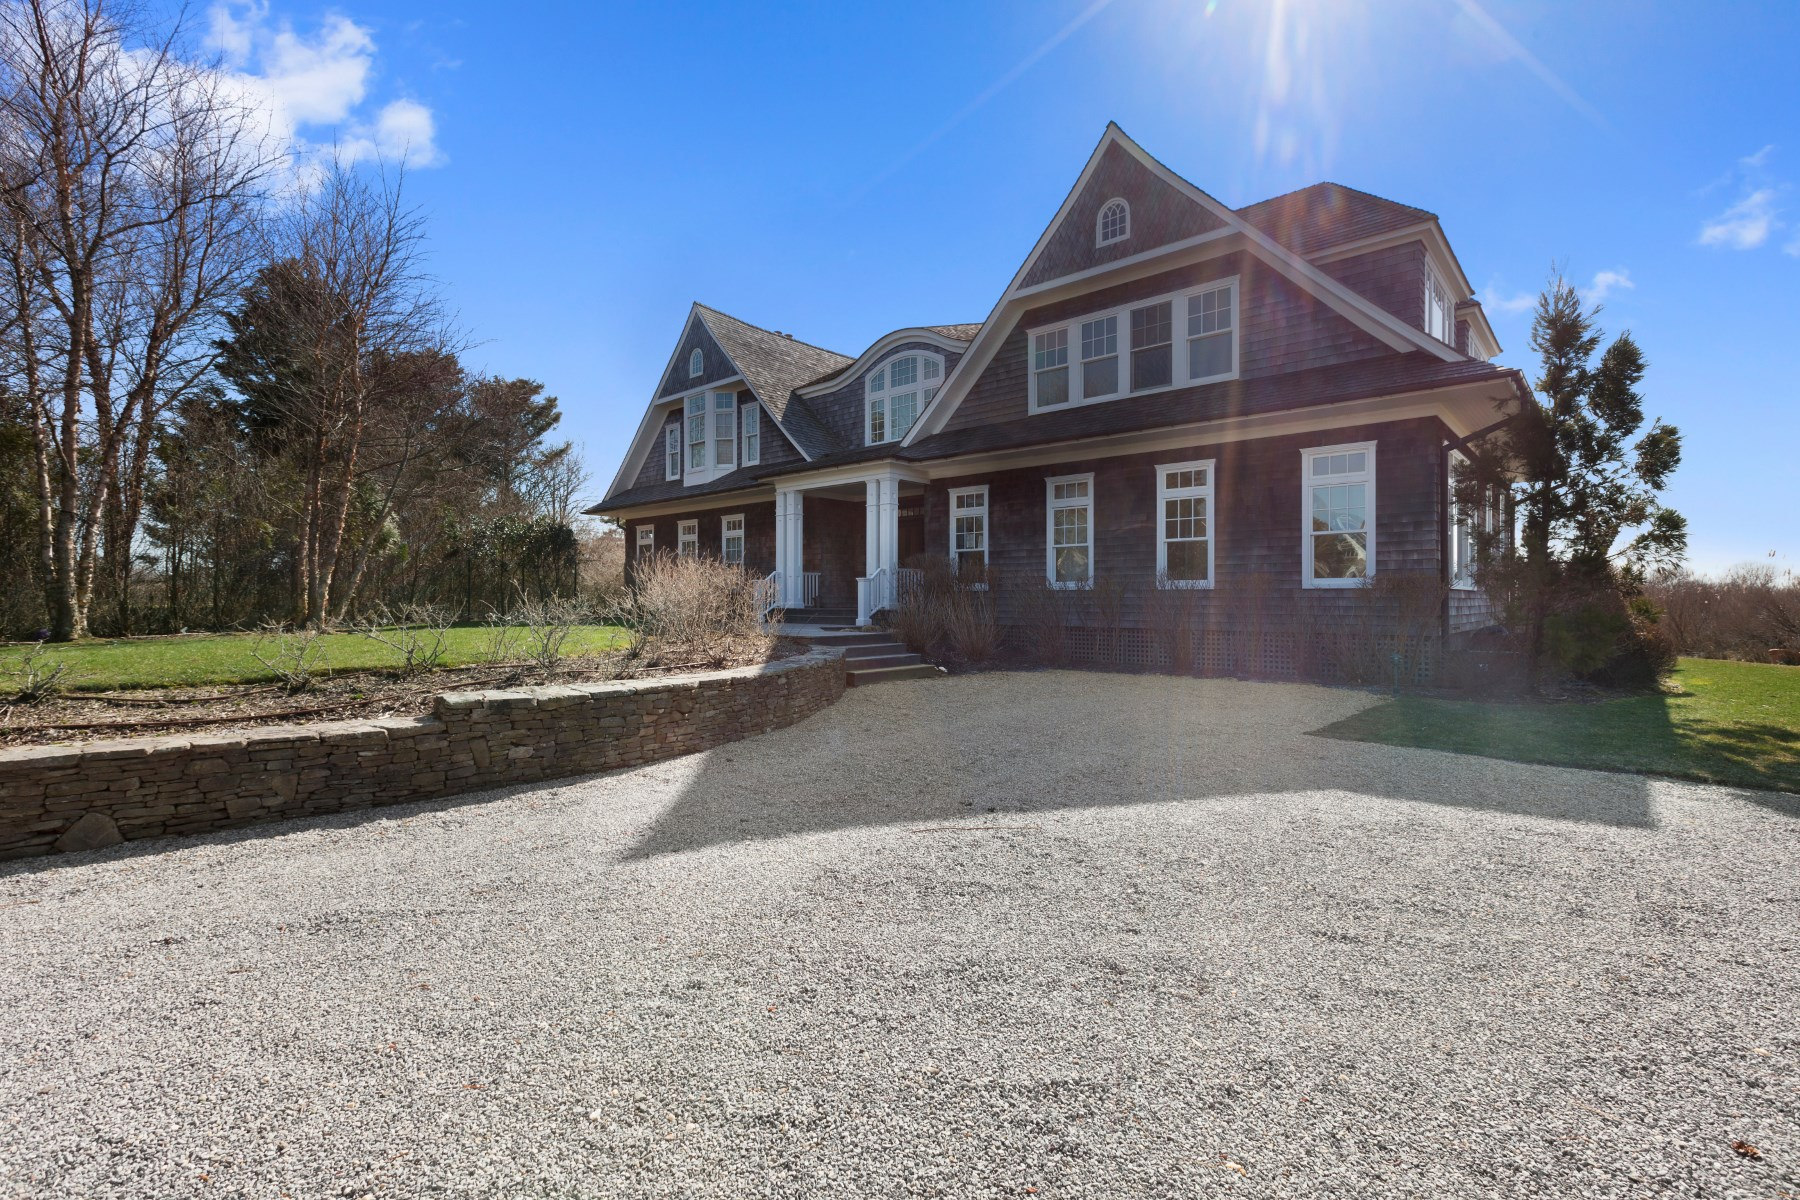 Single Family Home for Rent at Summer Oasis on Mecox Bay Bridgehampton, New York 11932 United States